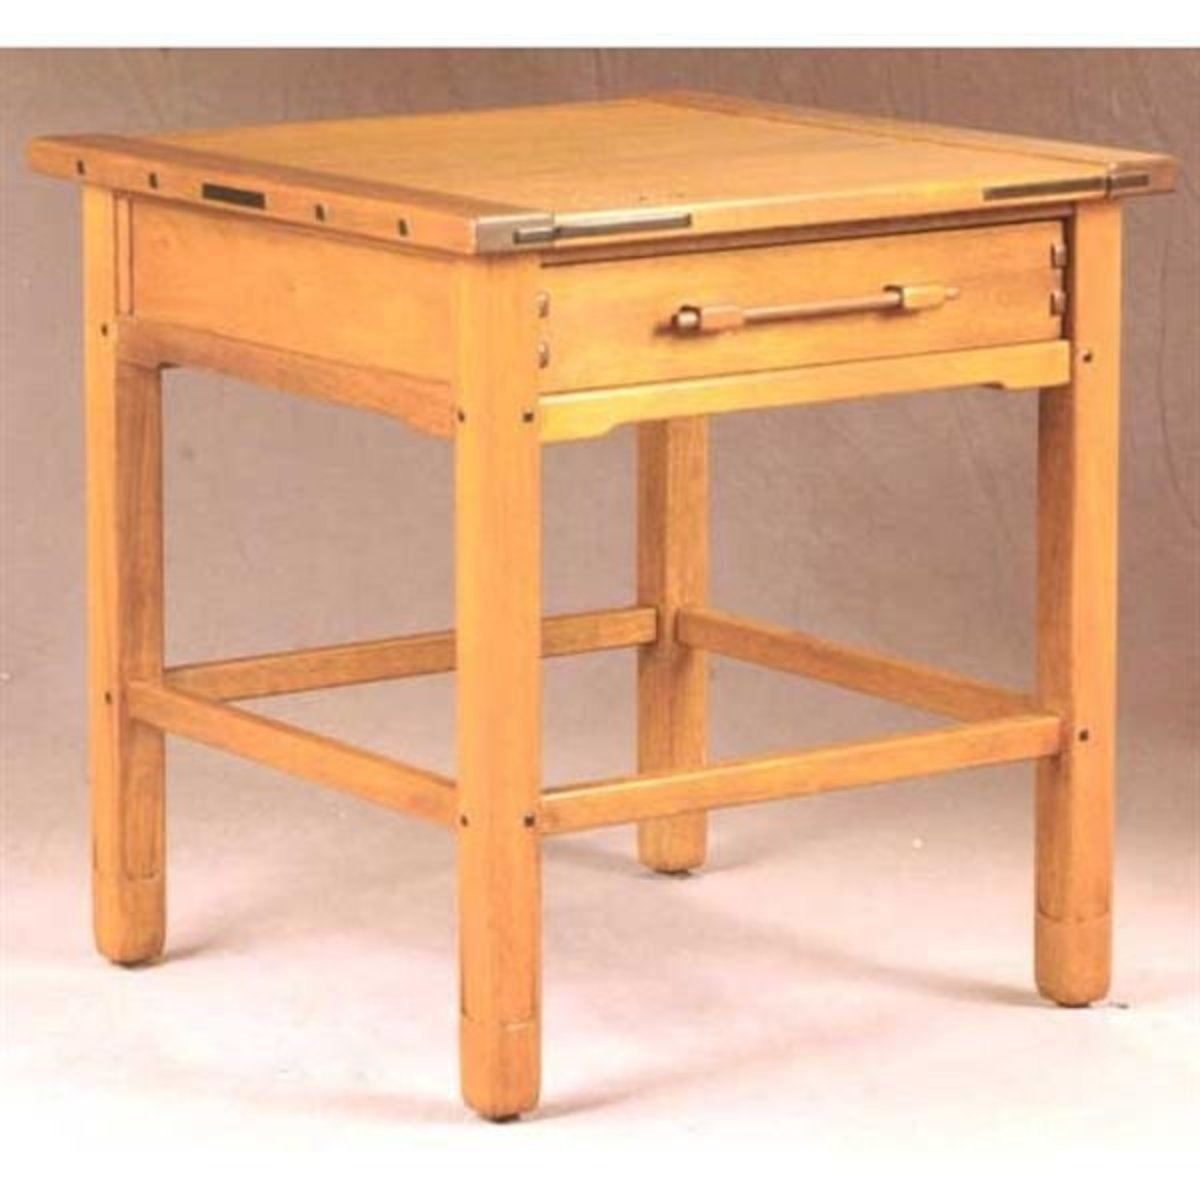 Woodworking Project Paper Plan To Build Aurora End Table AFD - End table with drawer plans